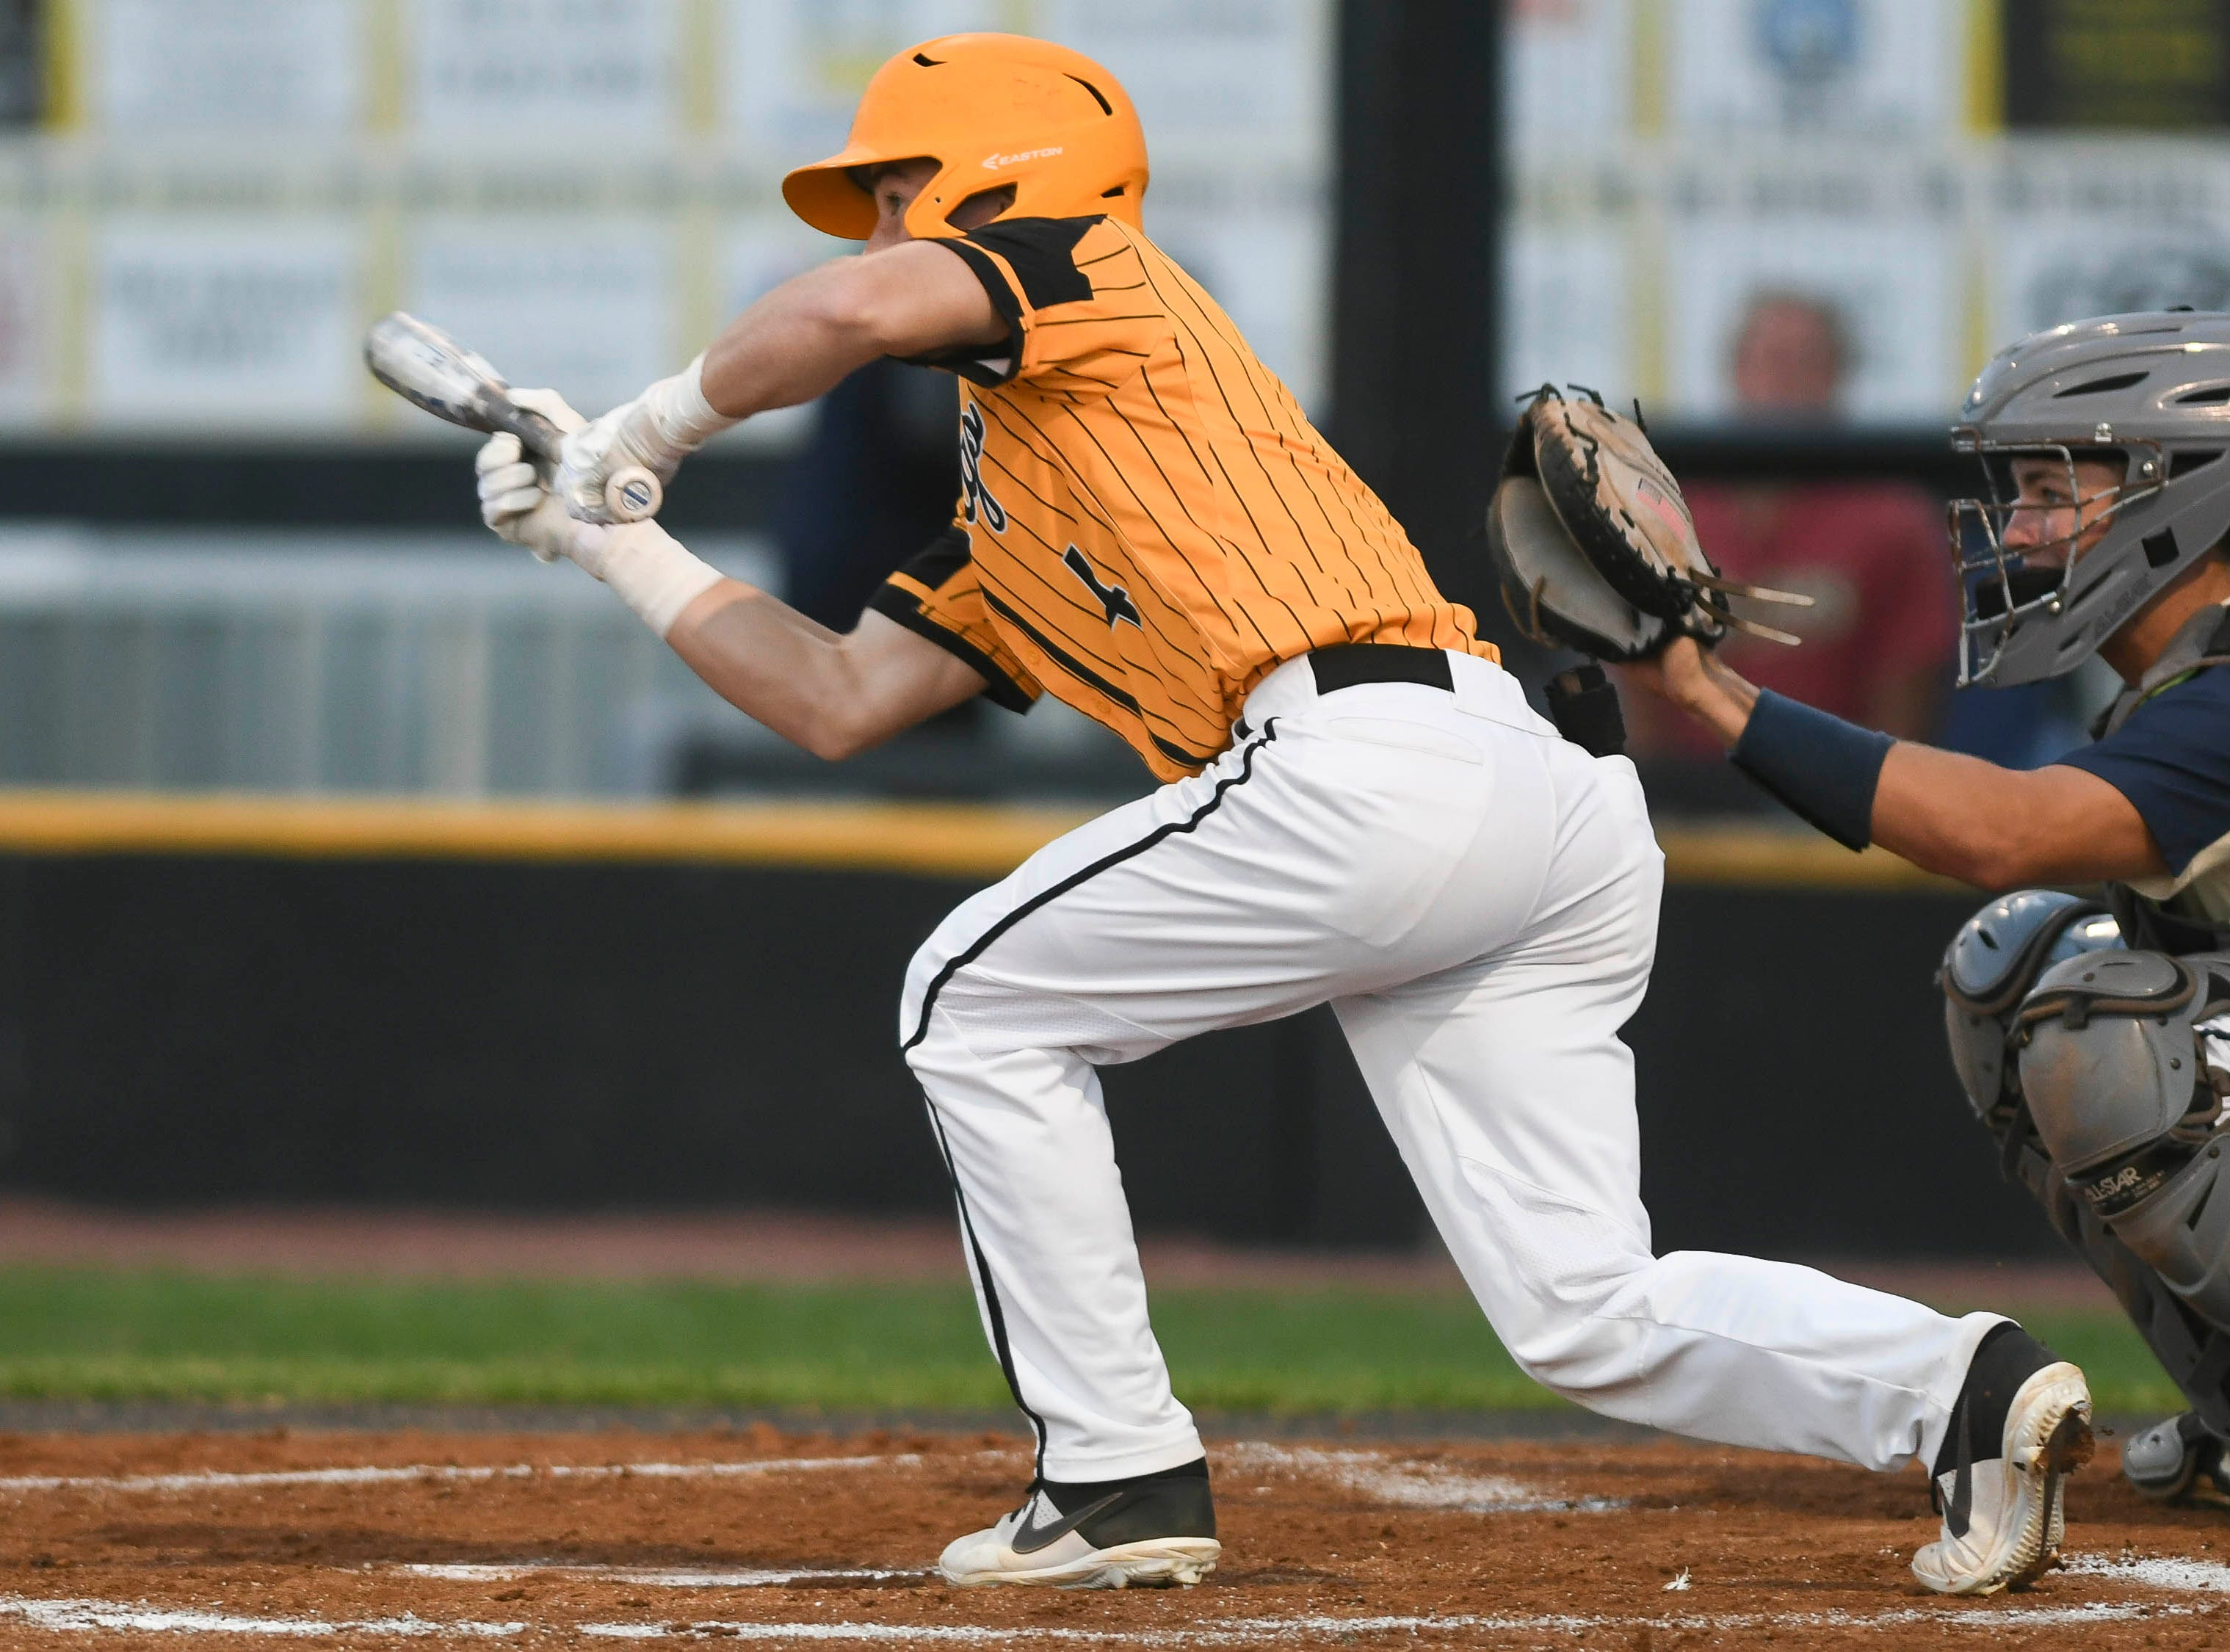 Ryan Taylor of Merritt Island attempts a bunt during Tuesday's game against Eau Gallie.